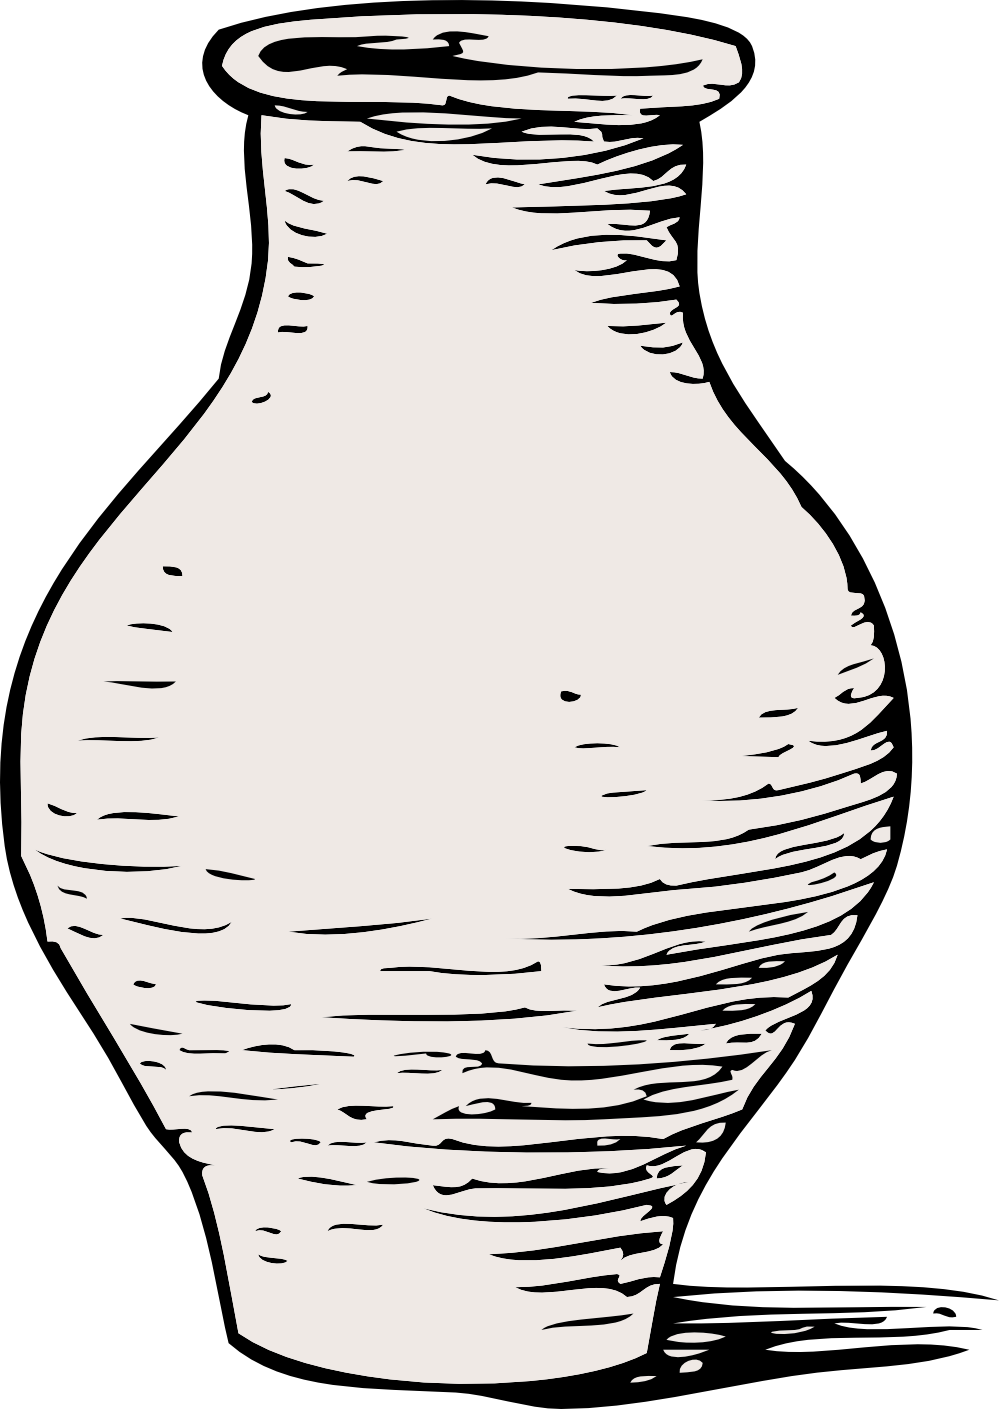 Real white vase clipart picture Vase Clipart Black And White   Clipart Panda - Free Clipart Images picture